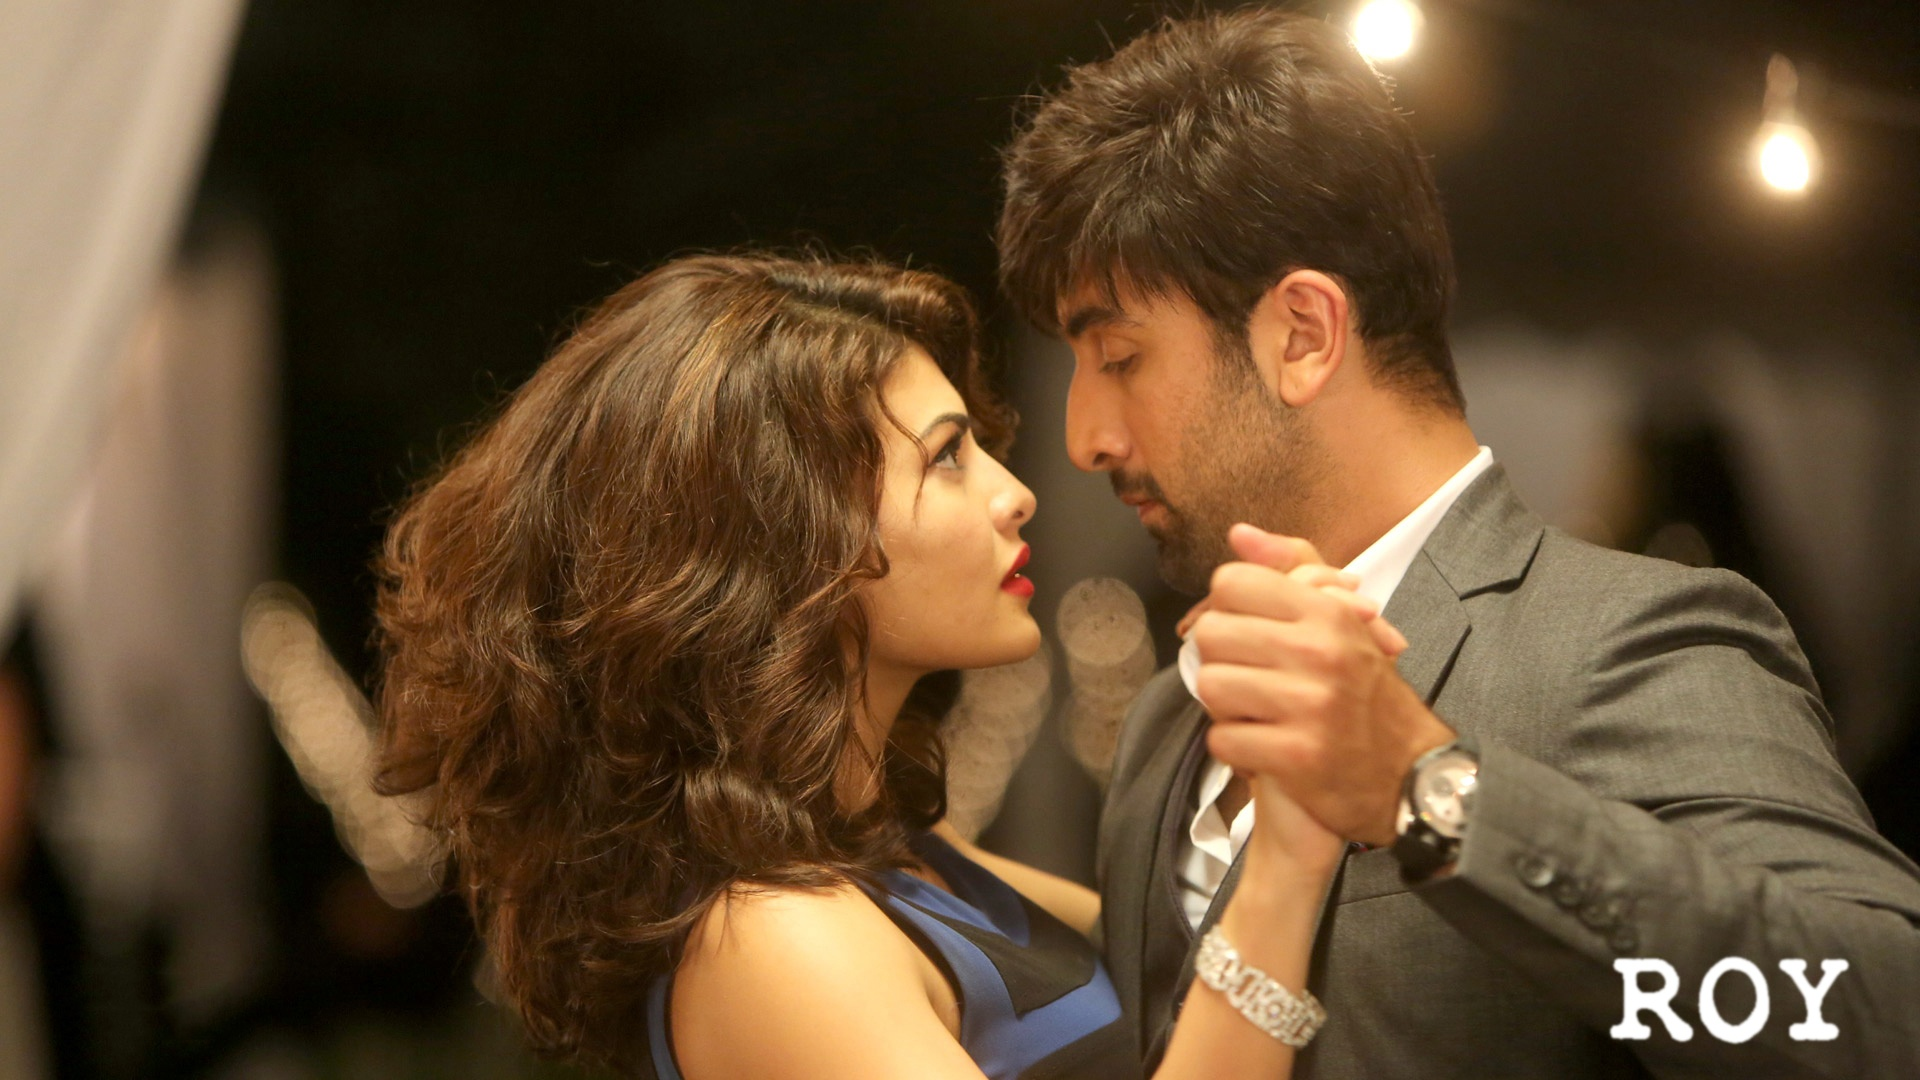 ranbir kapoor and jacqueline in roy wallpapers - 1920x1080 - 472464